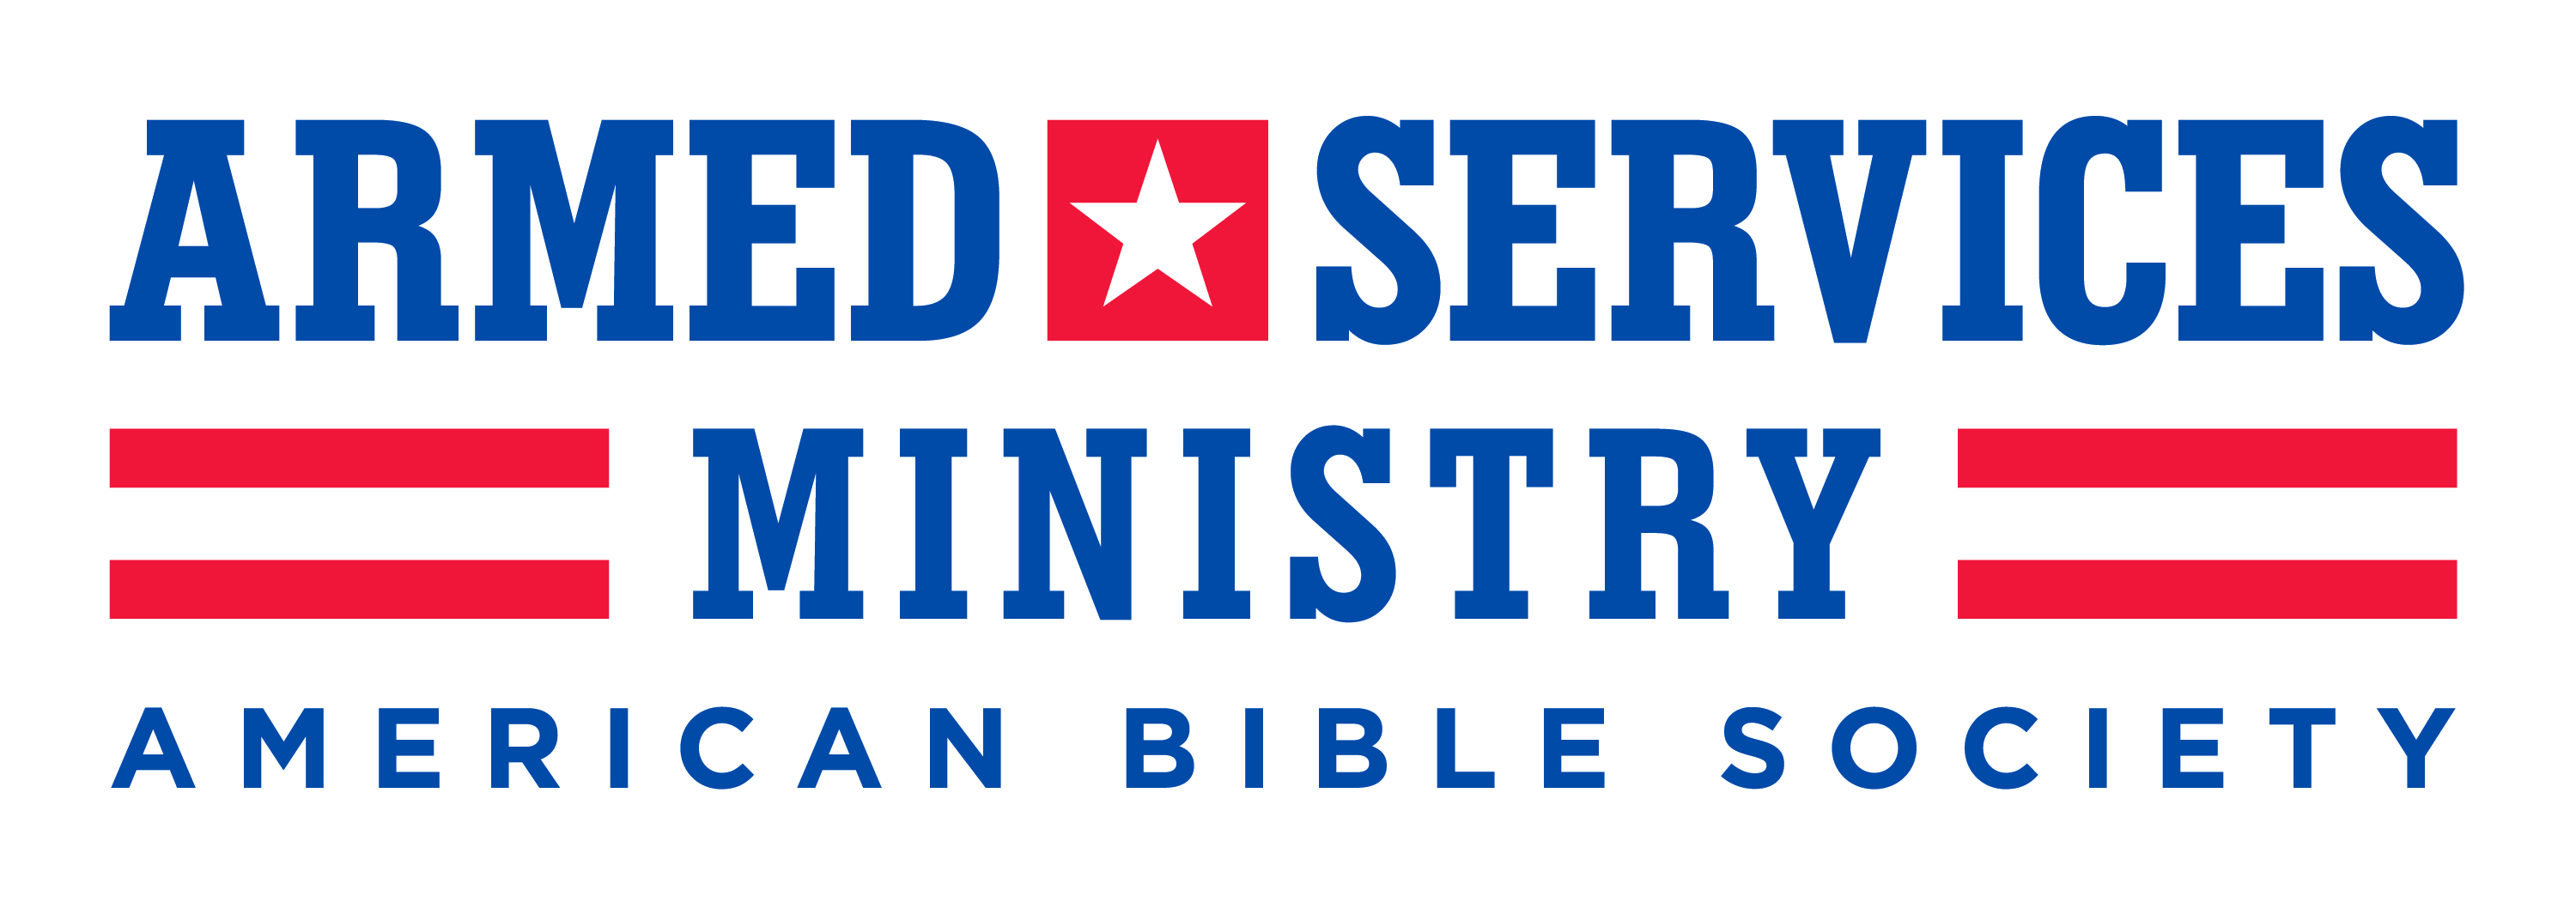 Armed Services Ministry